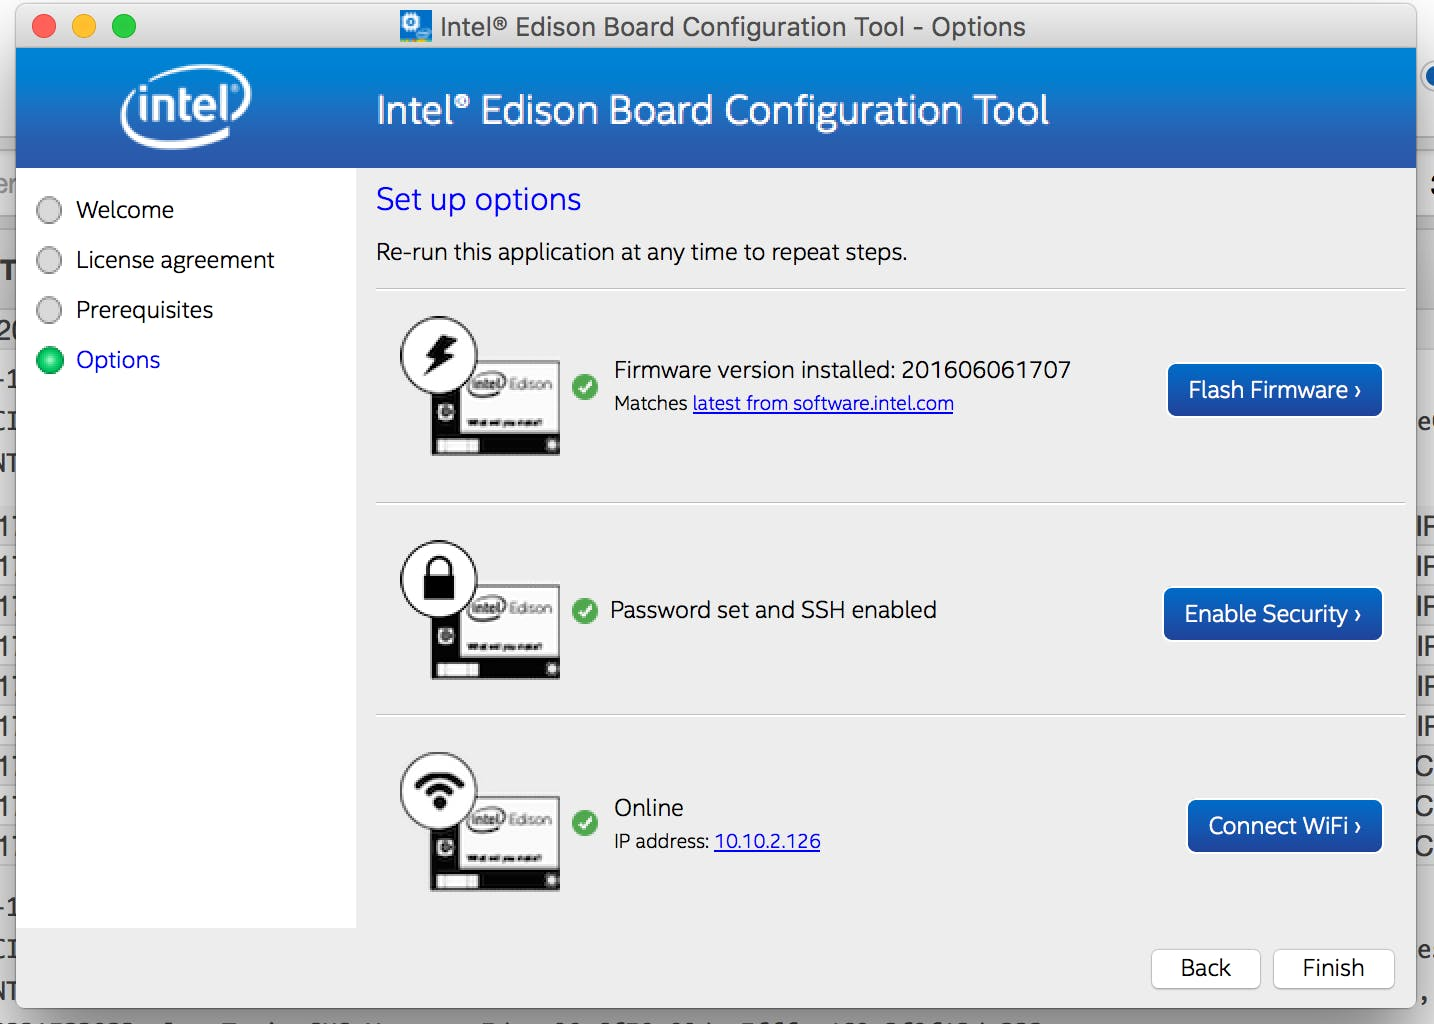 1. Configure Intel Edison Board.